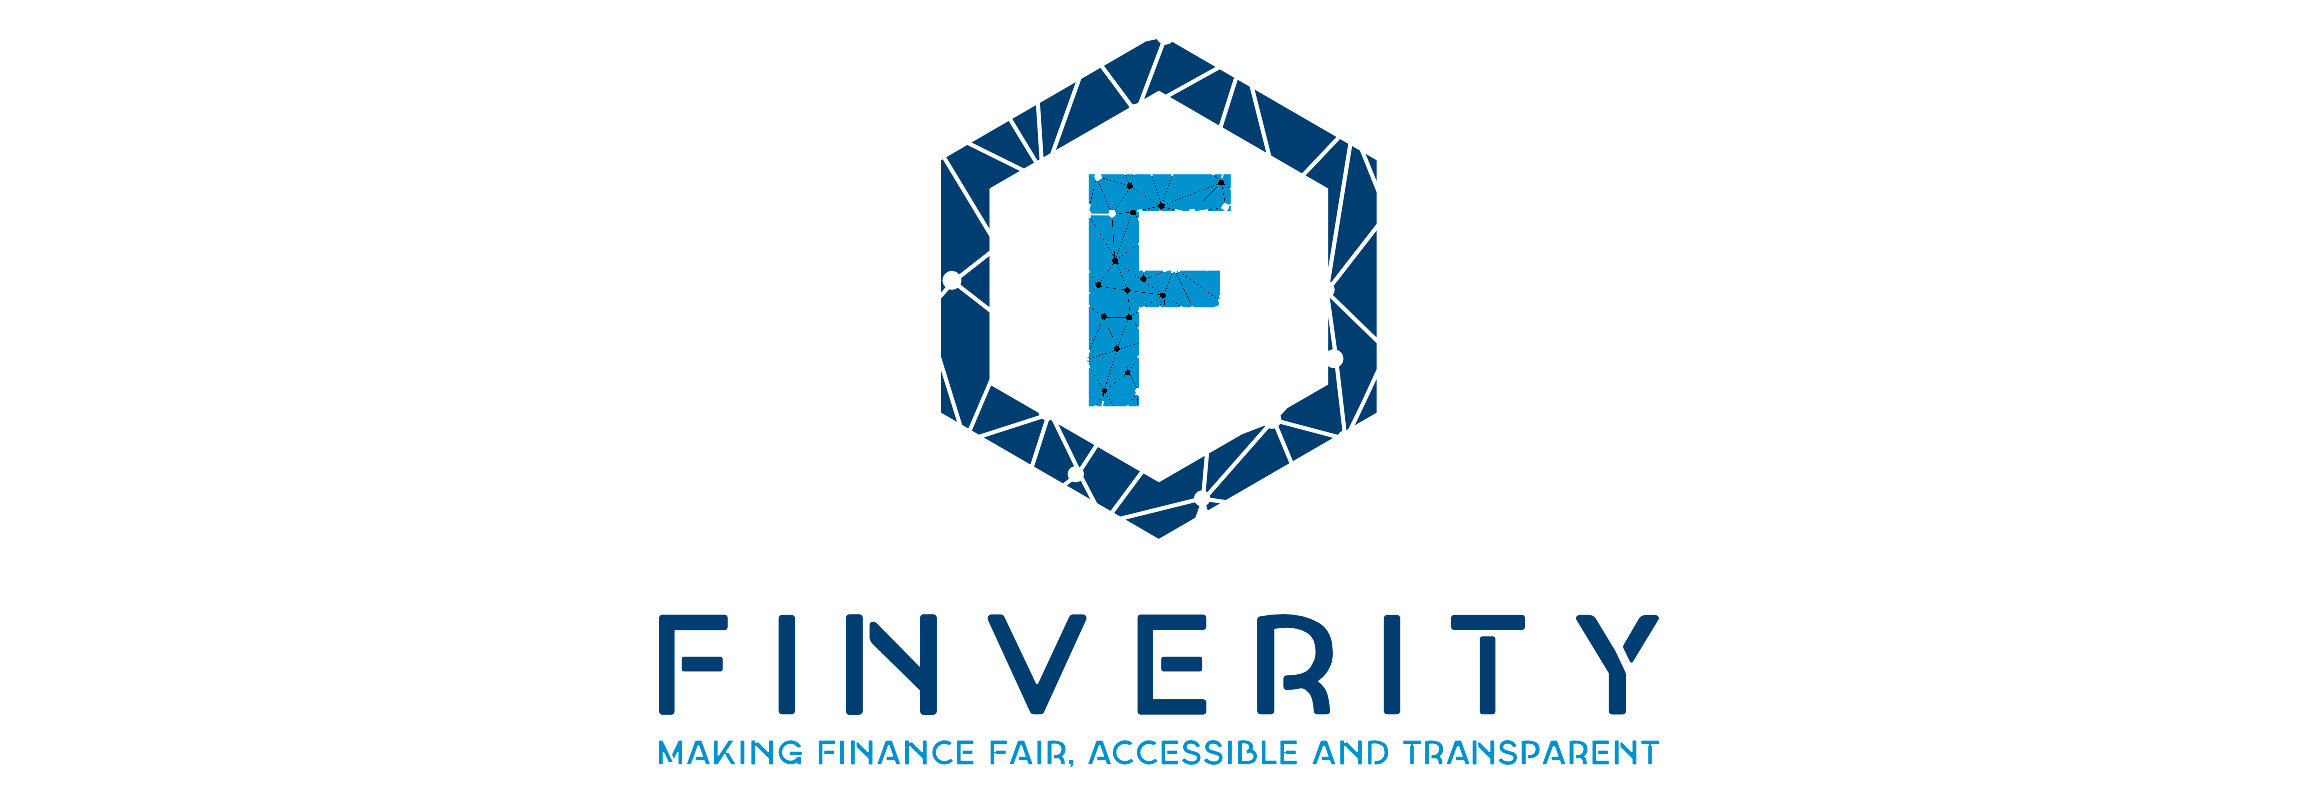 Finverity Joins Forces with Industry Leaders at GTR MENA to Discuss Closing the $1.5 Trn Trade Finance Gap